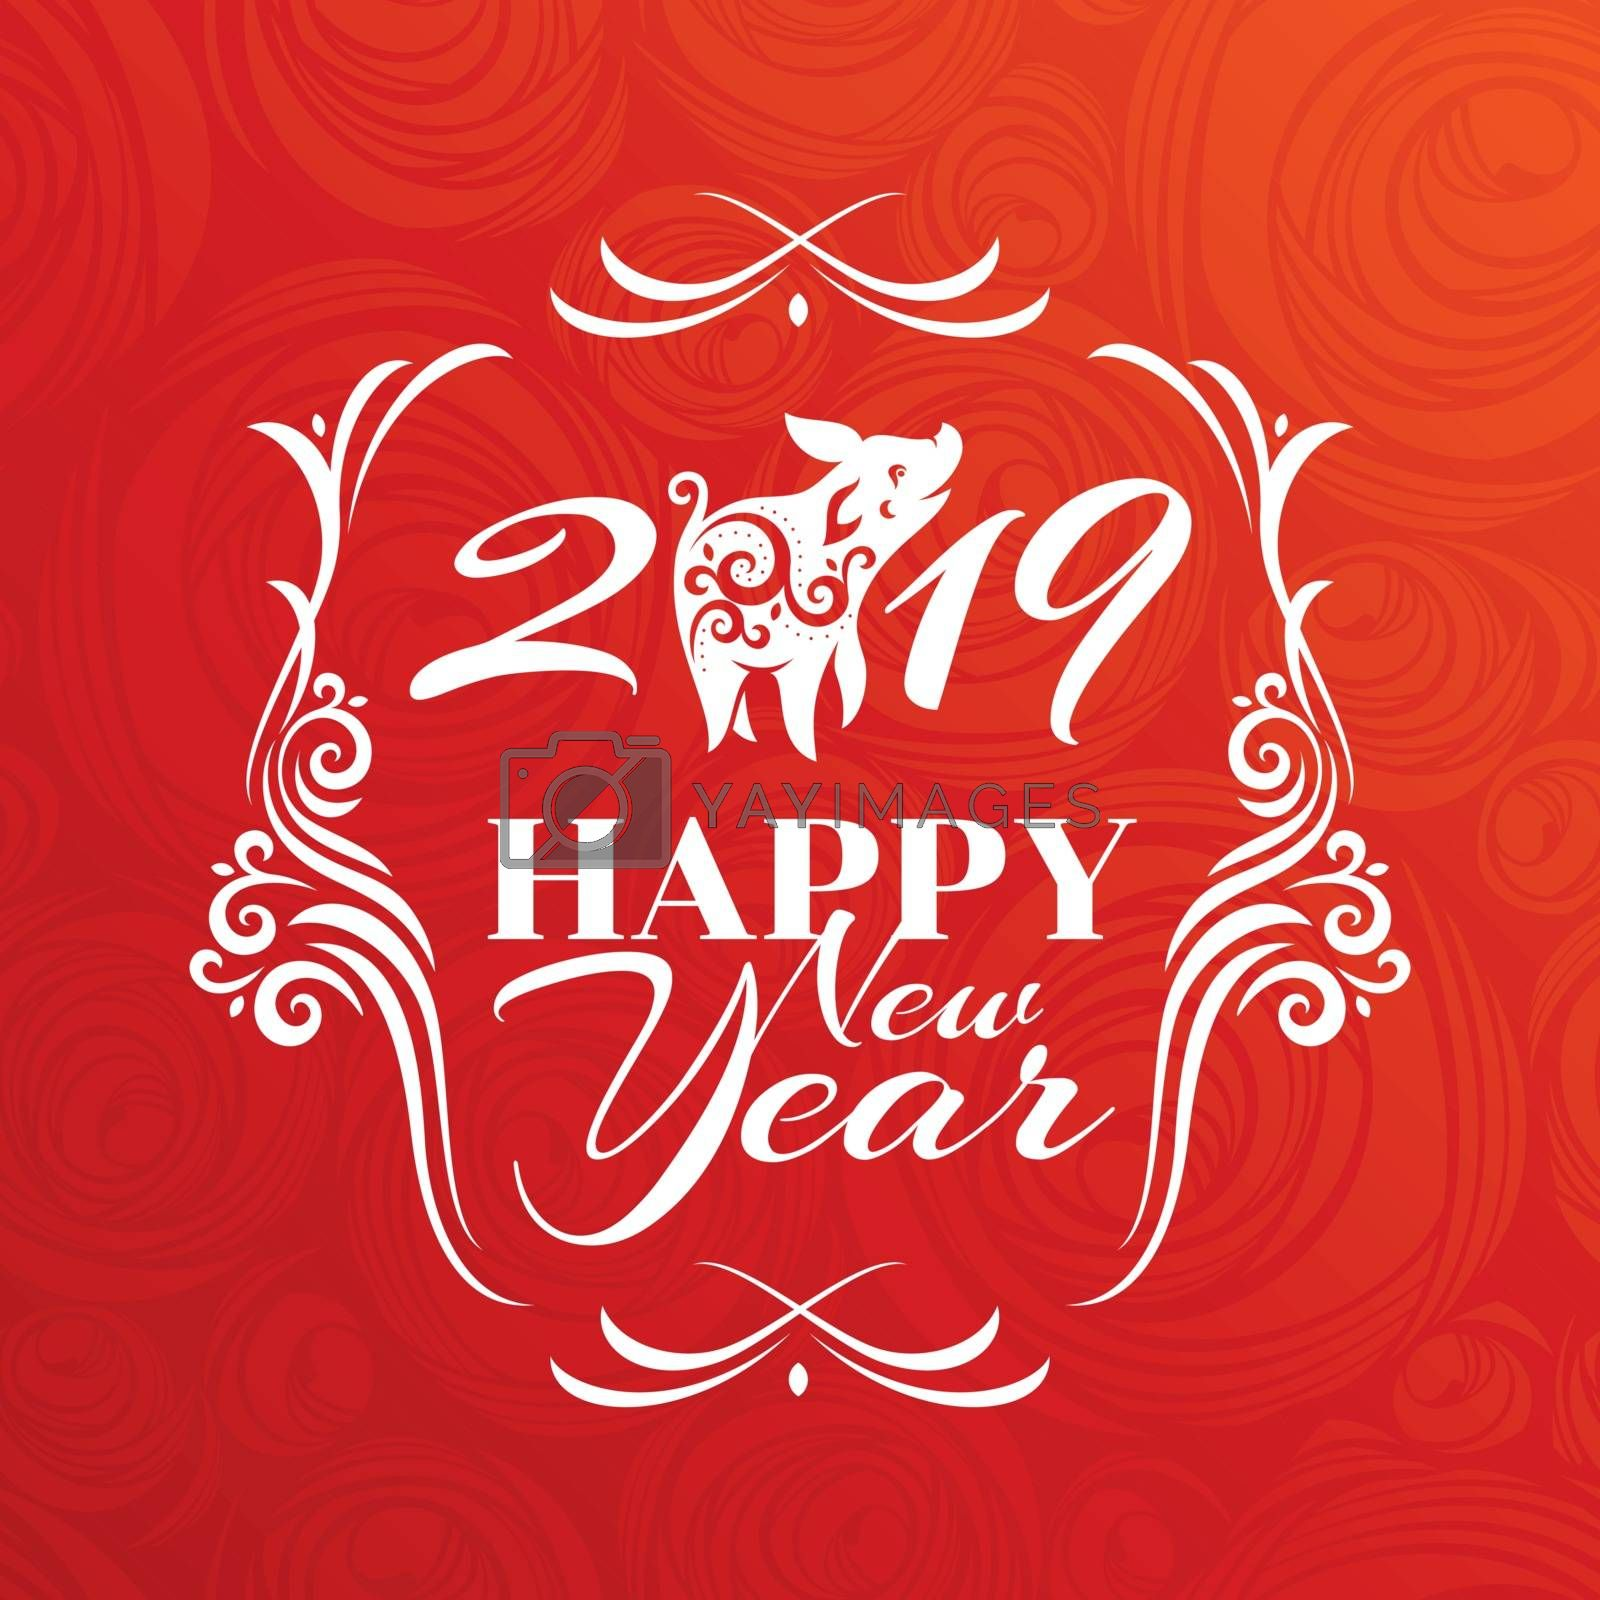 2019 Chinese New Year Greeting Card. Year of The Pig. Vector illustration